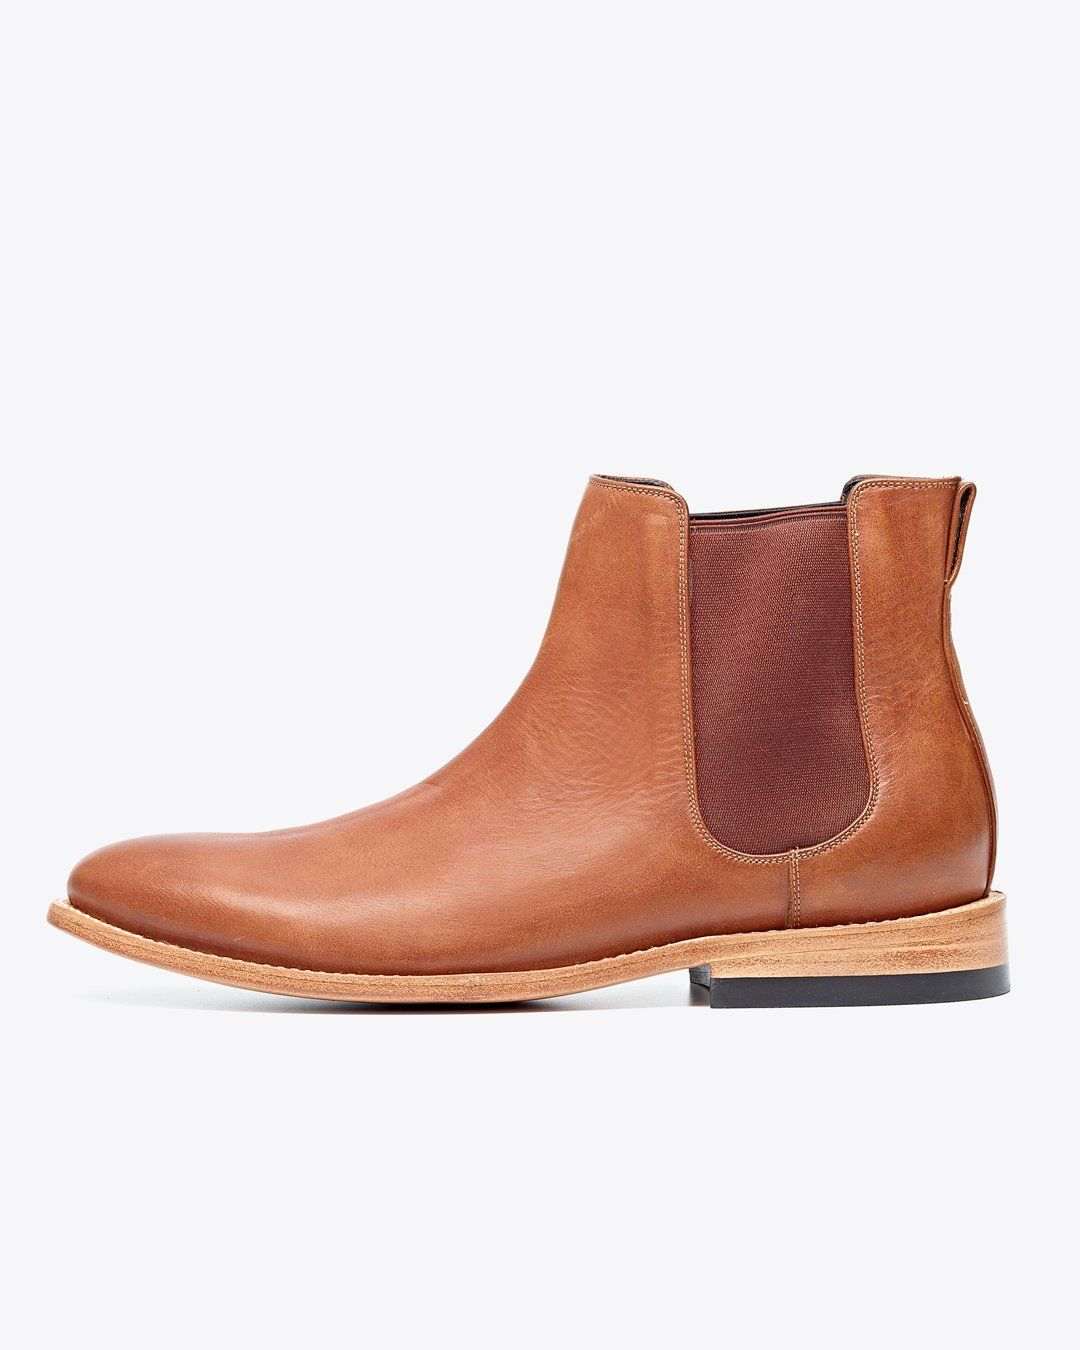 Nisolo Men's Chelsea Boot Saddle Brown